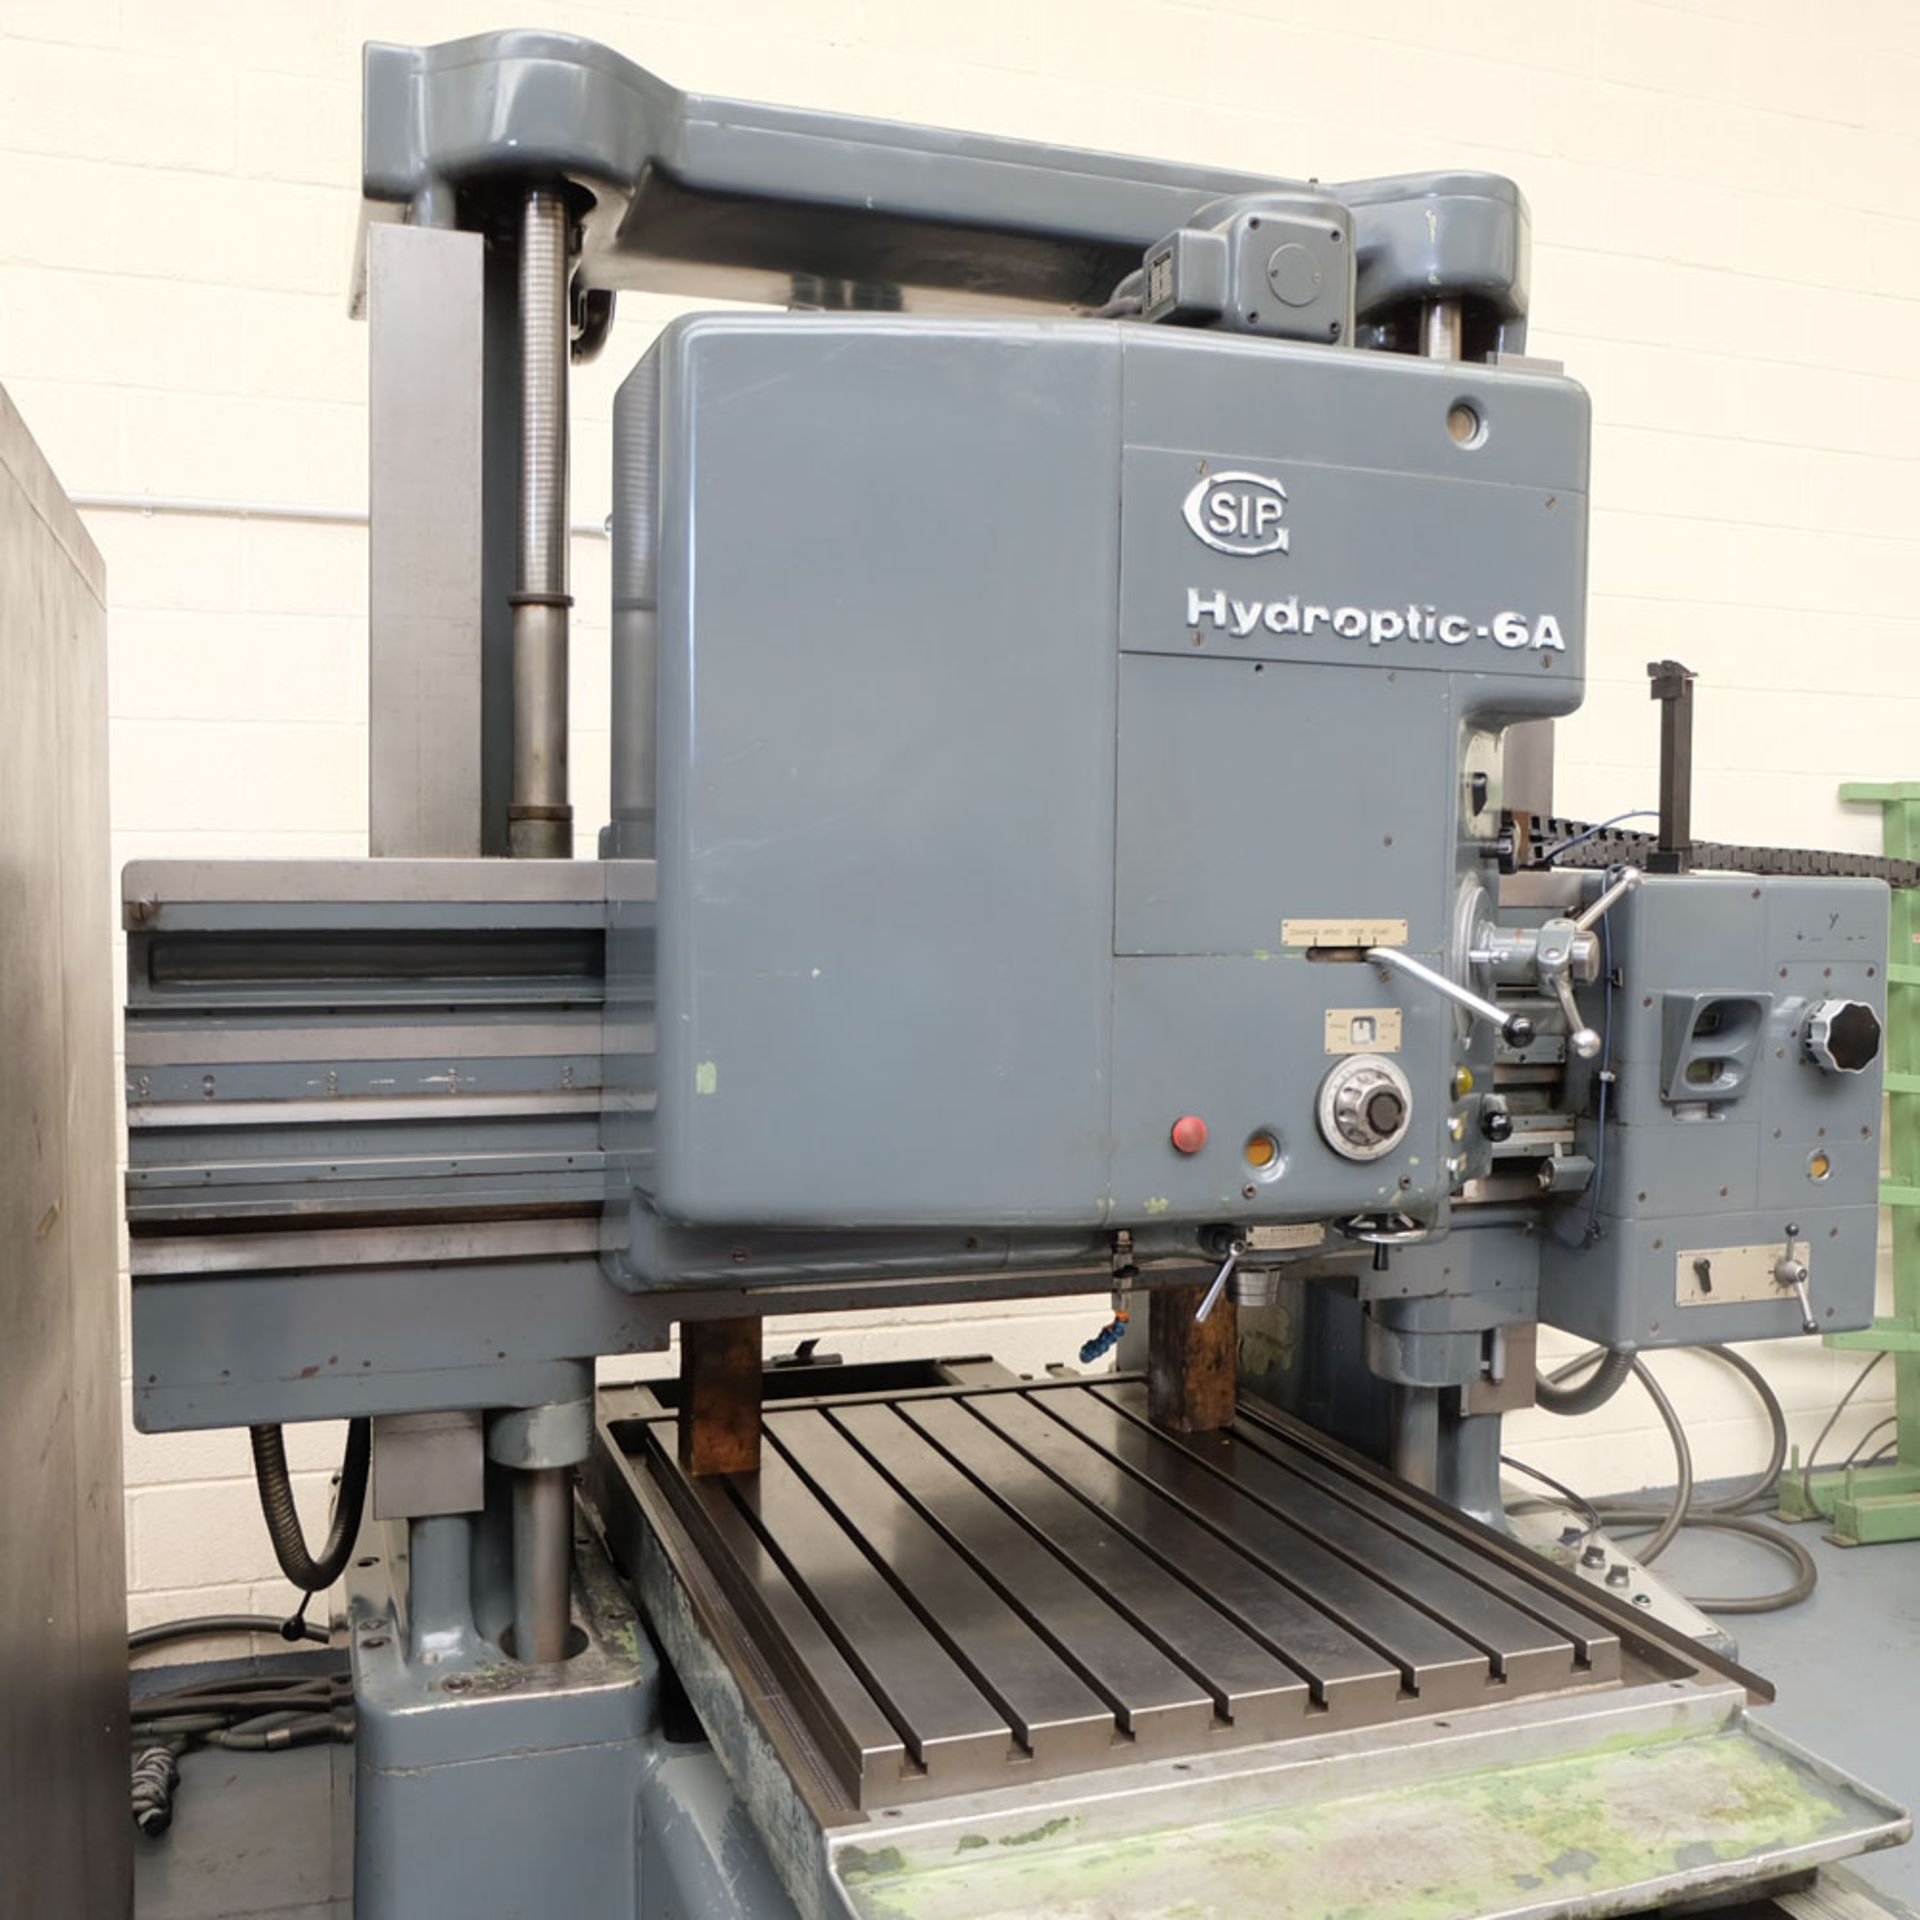 SIP Genevoise Hydroptic - 6A High Precision Jig Boring And Milling Machine. - Image 3 of 25